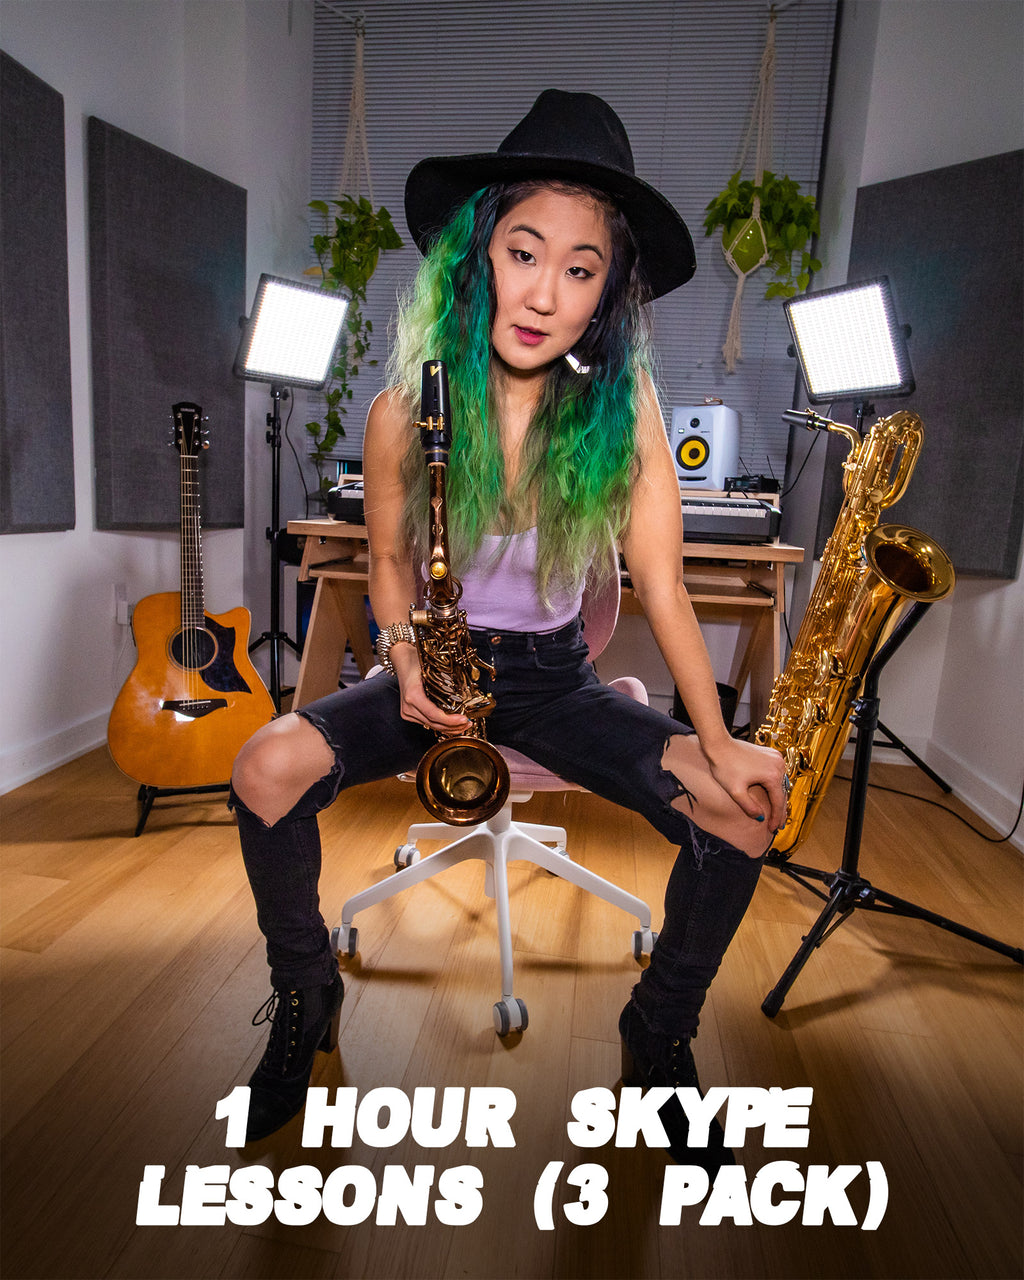 (3-Pack) Skype Lessons (1-hour each)